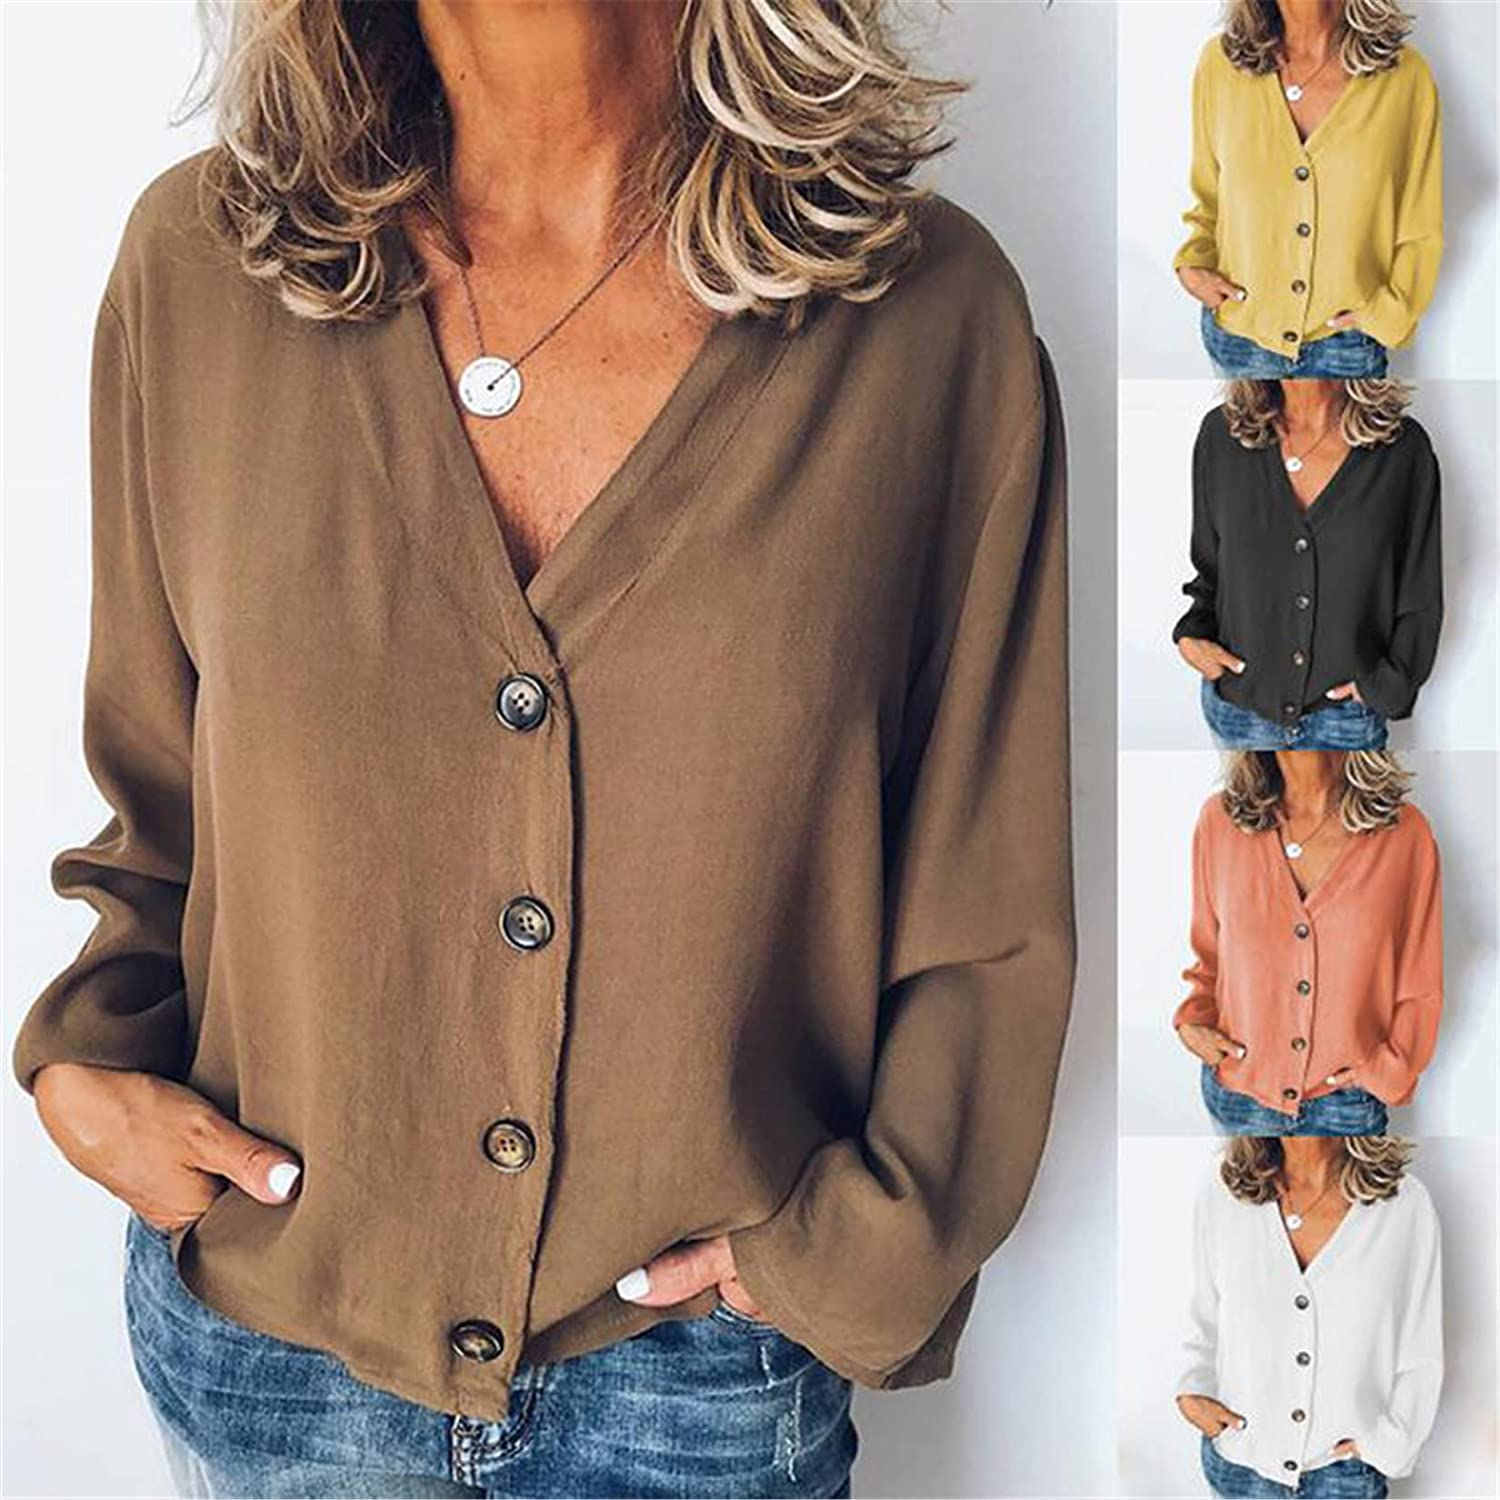 Andongnywell Women's Solid Color Long Sleeve Casual V Neck Tops Shirt Button Down Blouse Cardigan Long Sleeve Shirt